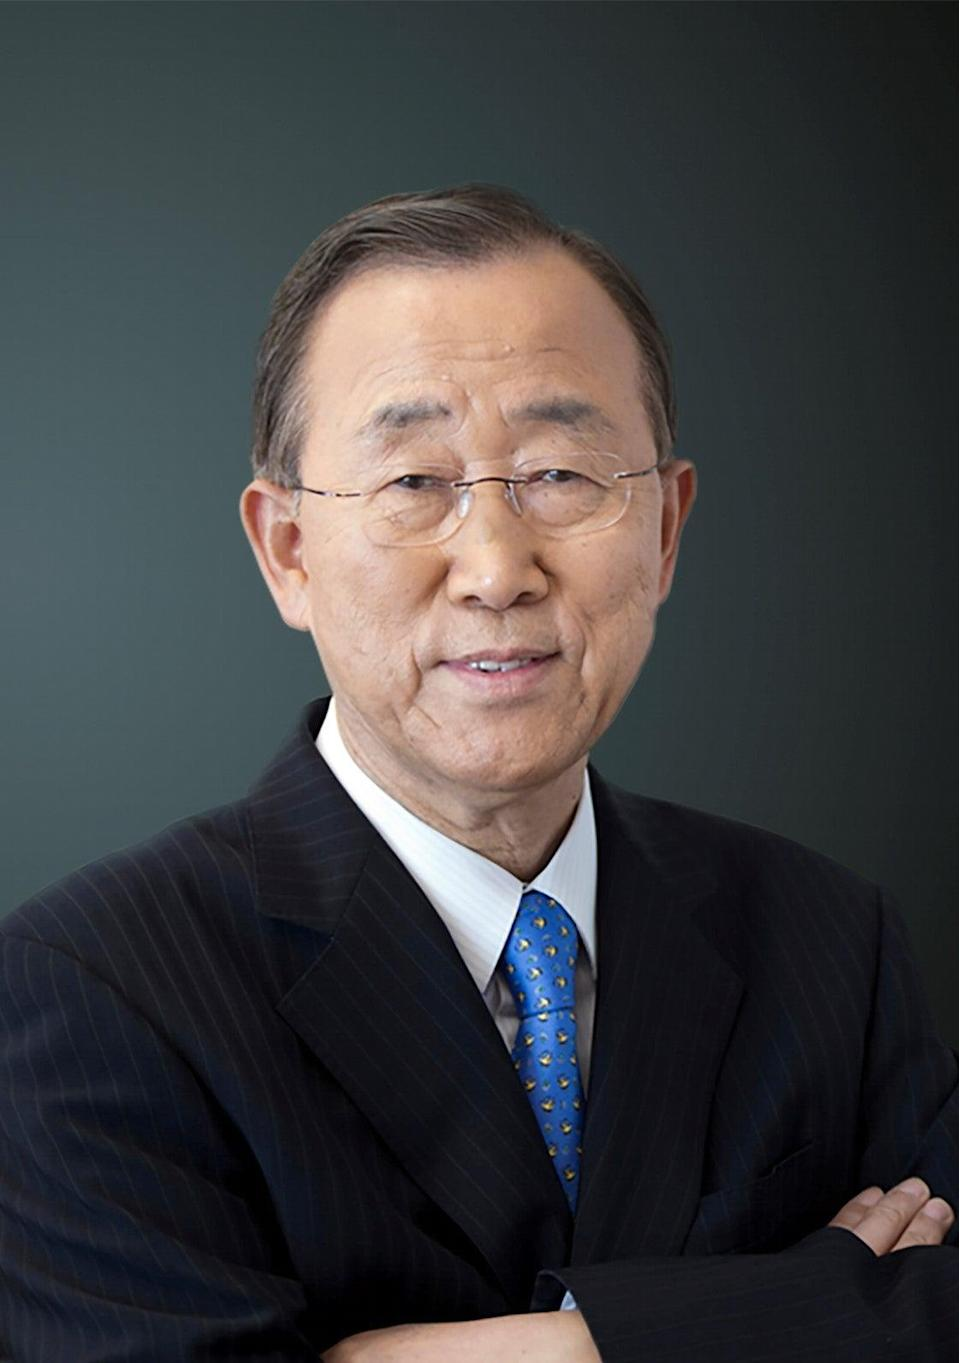 Former secretary-general Ban Ki-moon penned an open letter to world leaders ahead of the White House climate summit (Center for Global Citizens)